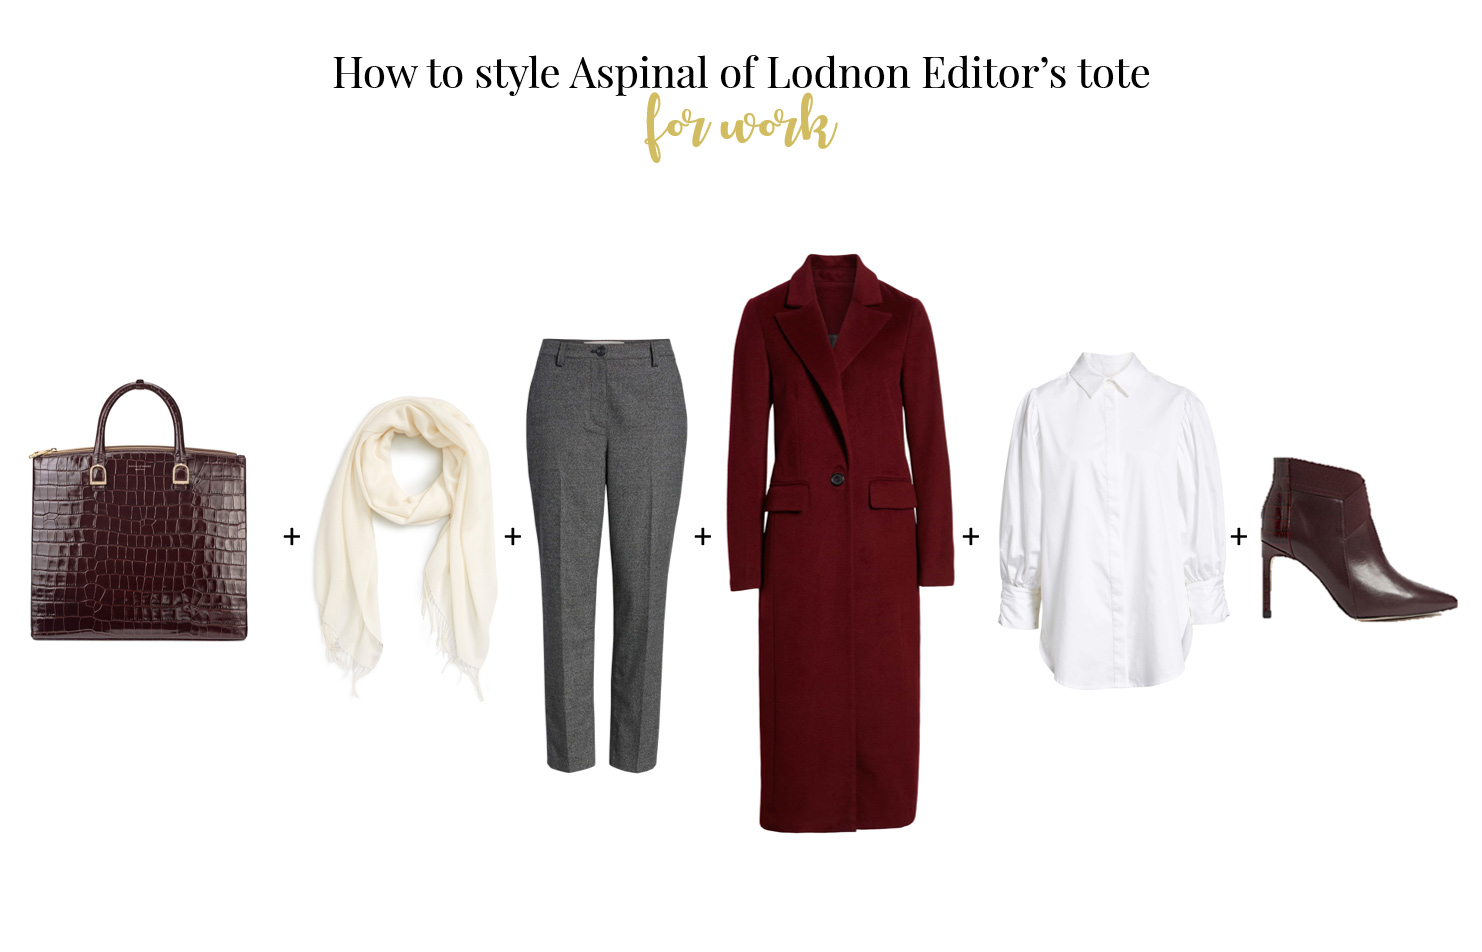 How to wear Aspinal of London Editor's tote bag for work